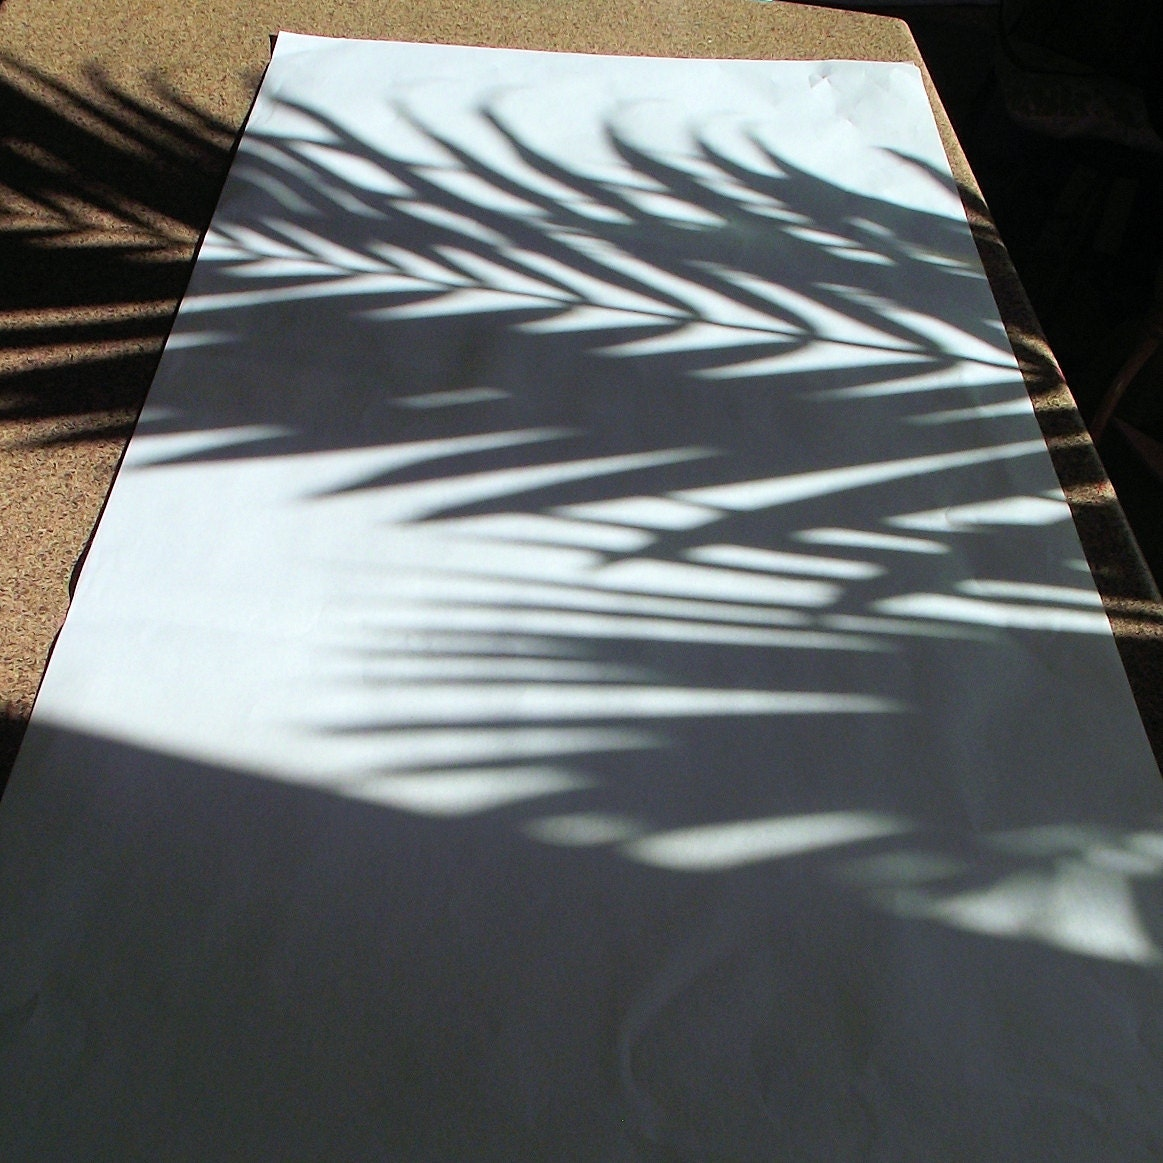 Palm shadow on the paper